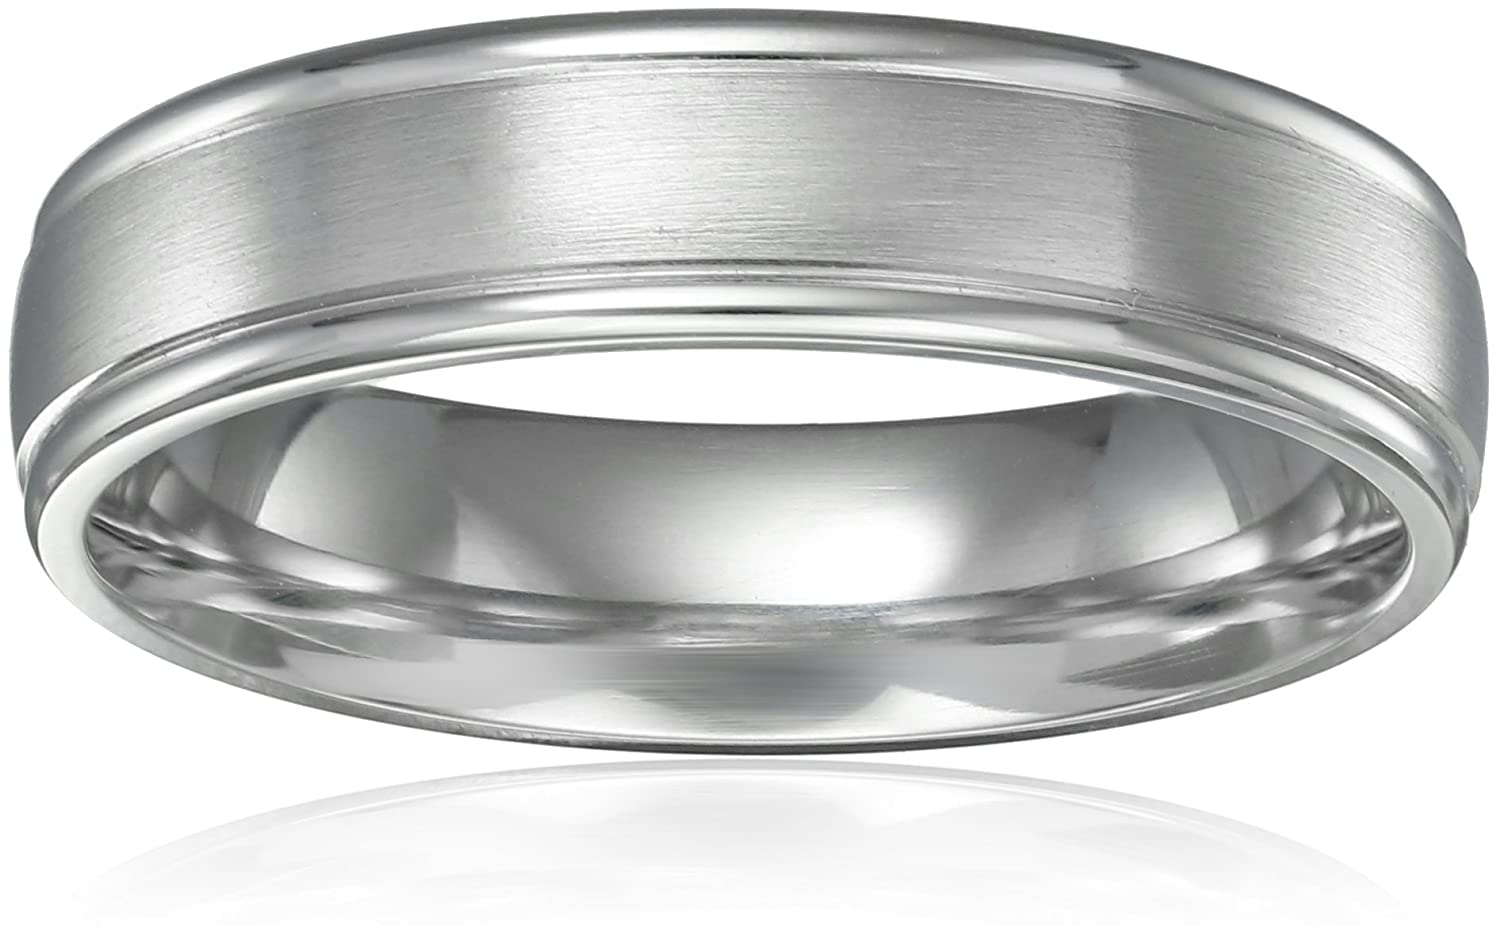 B mens platinum wedding rings Men s Platinum Comfort Fit Wedding Band with High Polish Round Edges with Satin Center 6 mm Amazon com